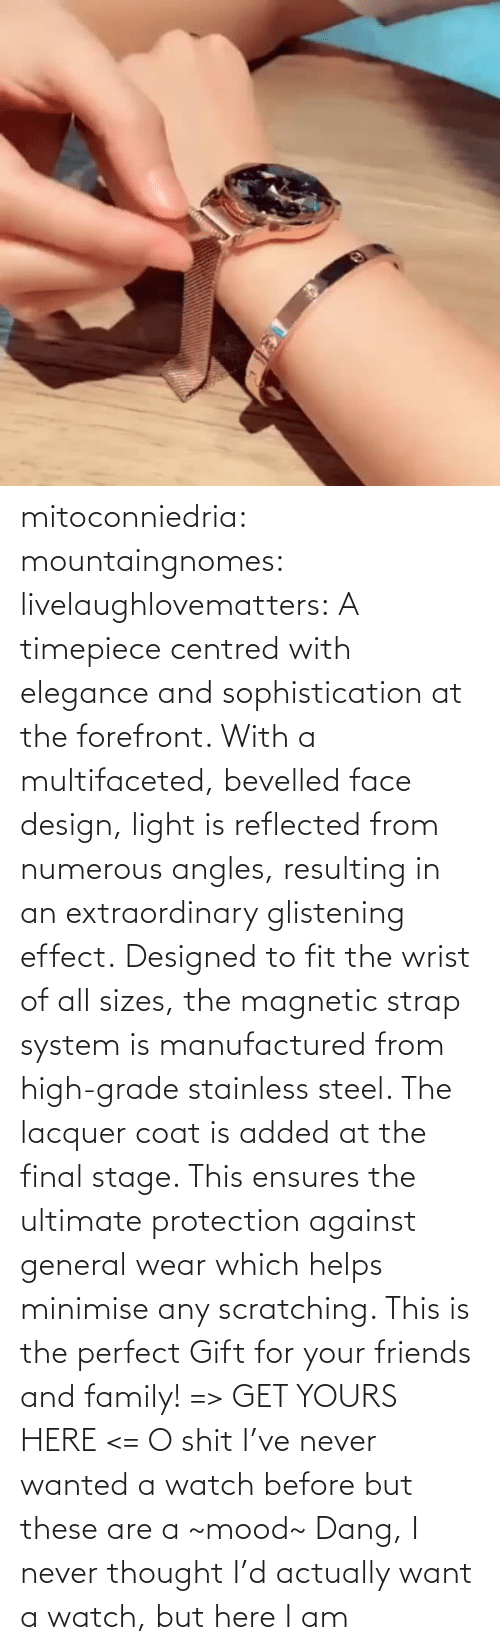 want: mitoconniedria: mountaingnomes:   livelaughlovematters:  A timepiece centred with elegance and sophistication at the forefront. With a multifaceted, bevelled face design, light is reflected from numerous angles, resulting in an extraordinary glistening effect. Designed to fit the wrist of all sizes, the magnetic strap system is manufactured from high-grade stainless steel. The lacquer coat is added at the final stage. This ensures the ultimate protection against general wear which helps minimise any scratching. This is the perfect Gift for your friends and family! => GET YOURS HERE <=  O shit I've never wanted a watch before but these are a ~mood~    Dang, I never thought I'd actually want a watch, but here I am